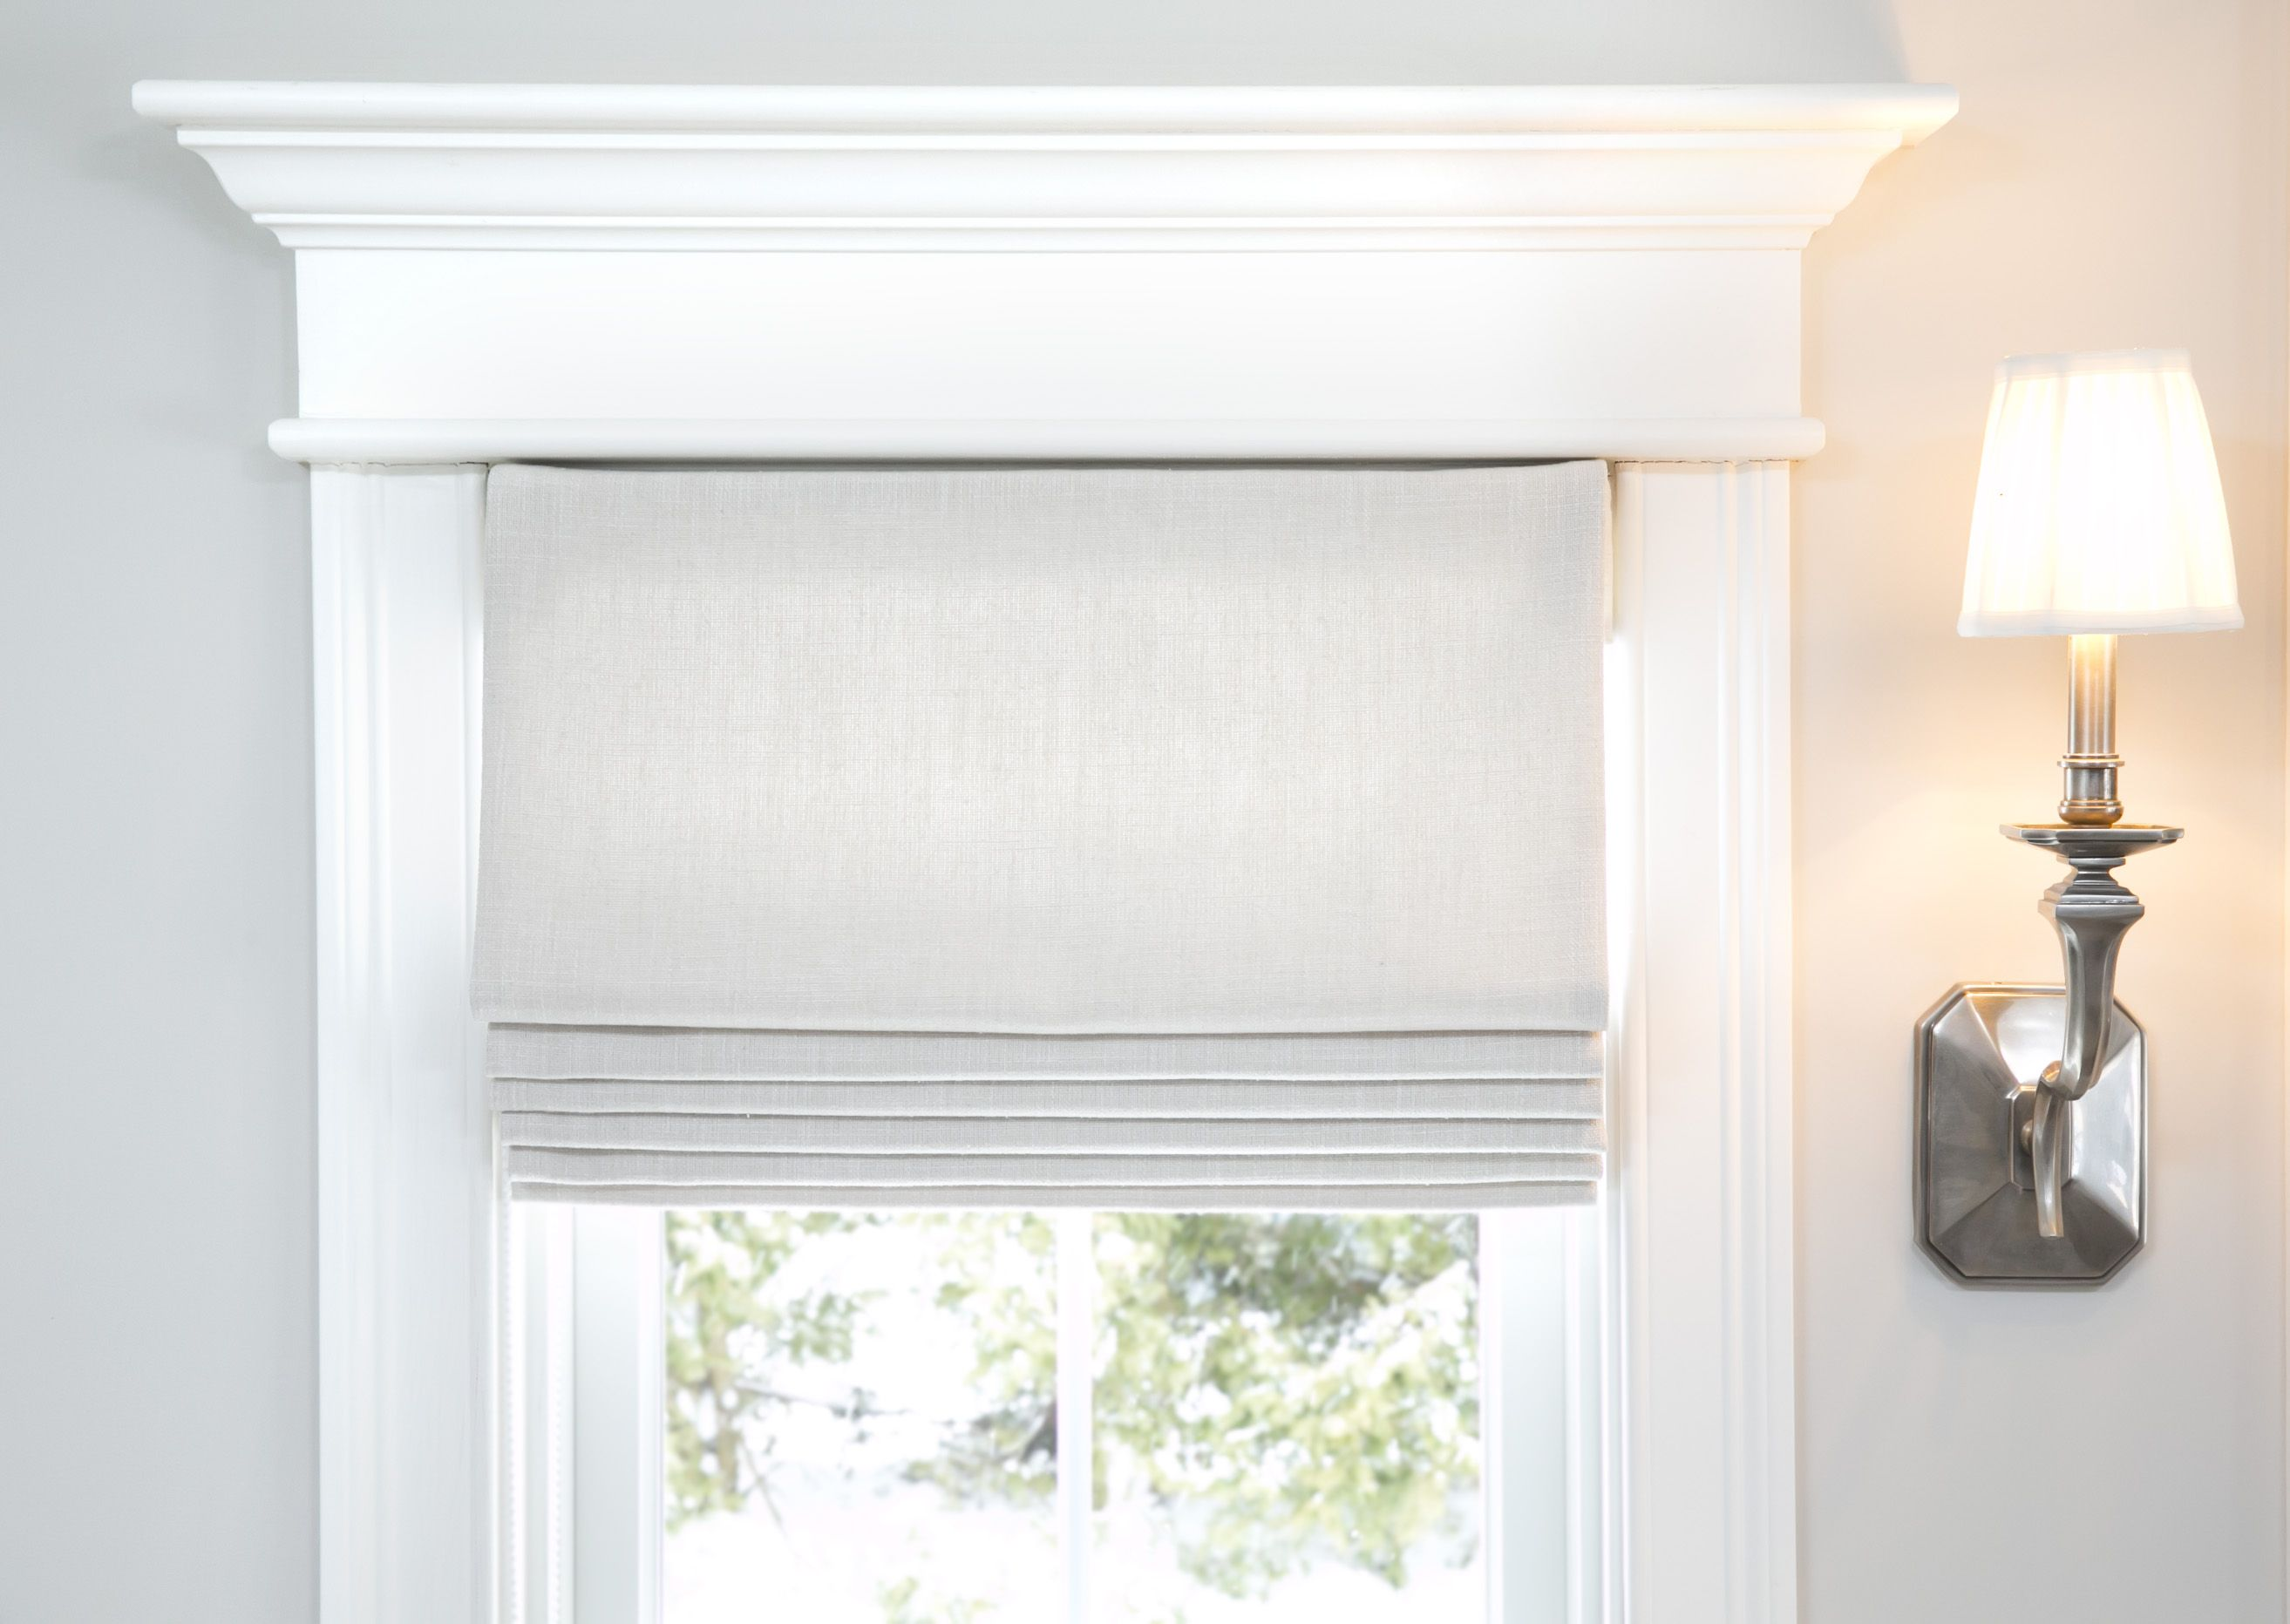 Snow white thermal fabric roman shades free shipping on orders over - White Cottage Custom Classic Operable Roman Shade In Perth Greige Linen Fabric